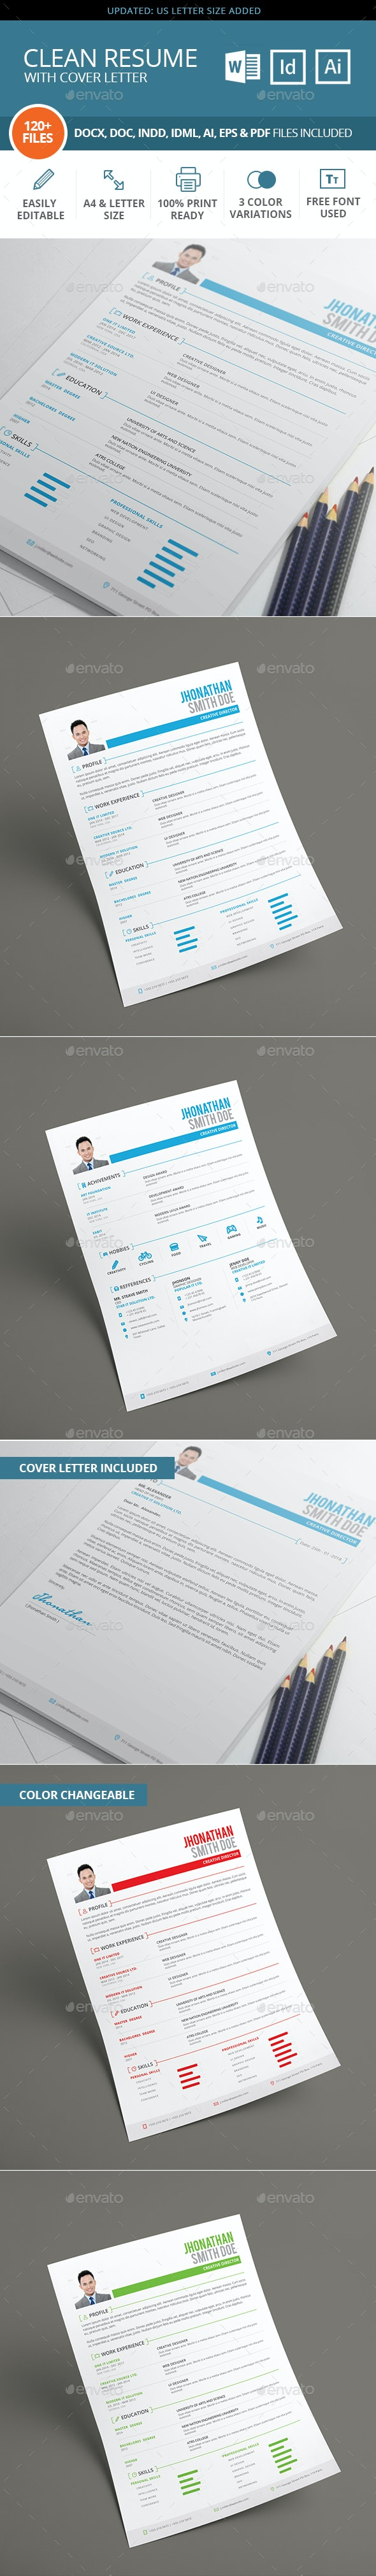 MS Word Clean Resume with Cover Letter - Resumes Stationery